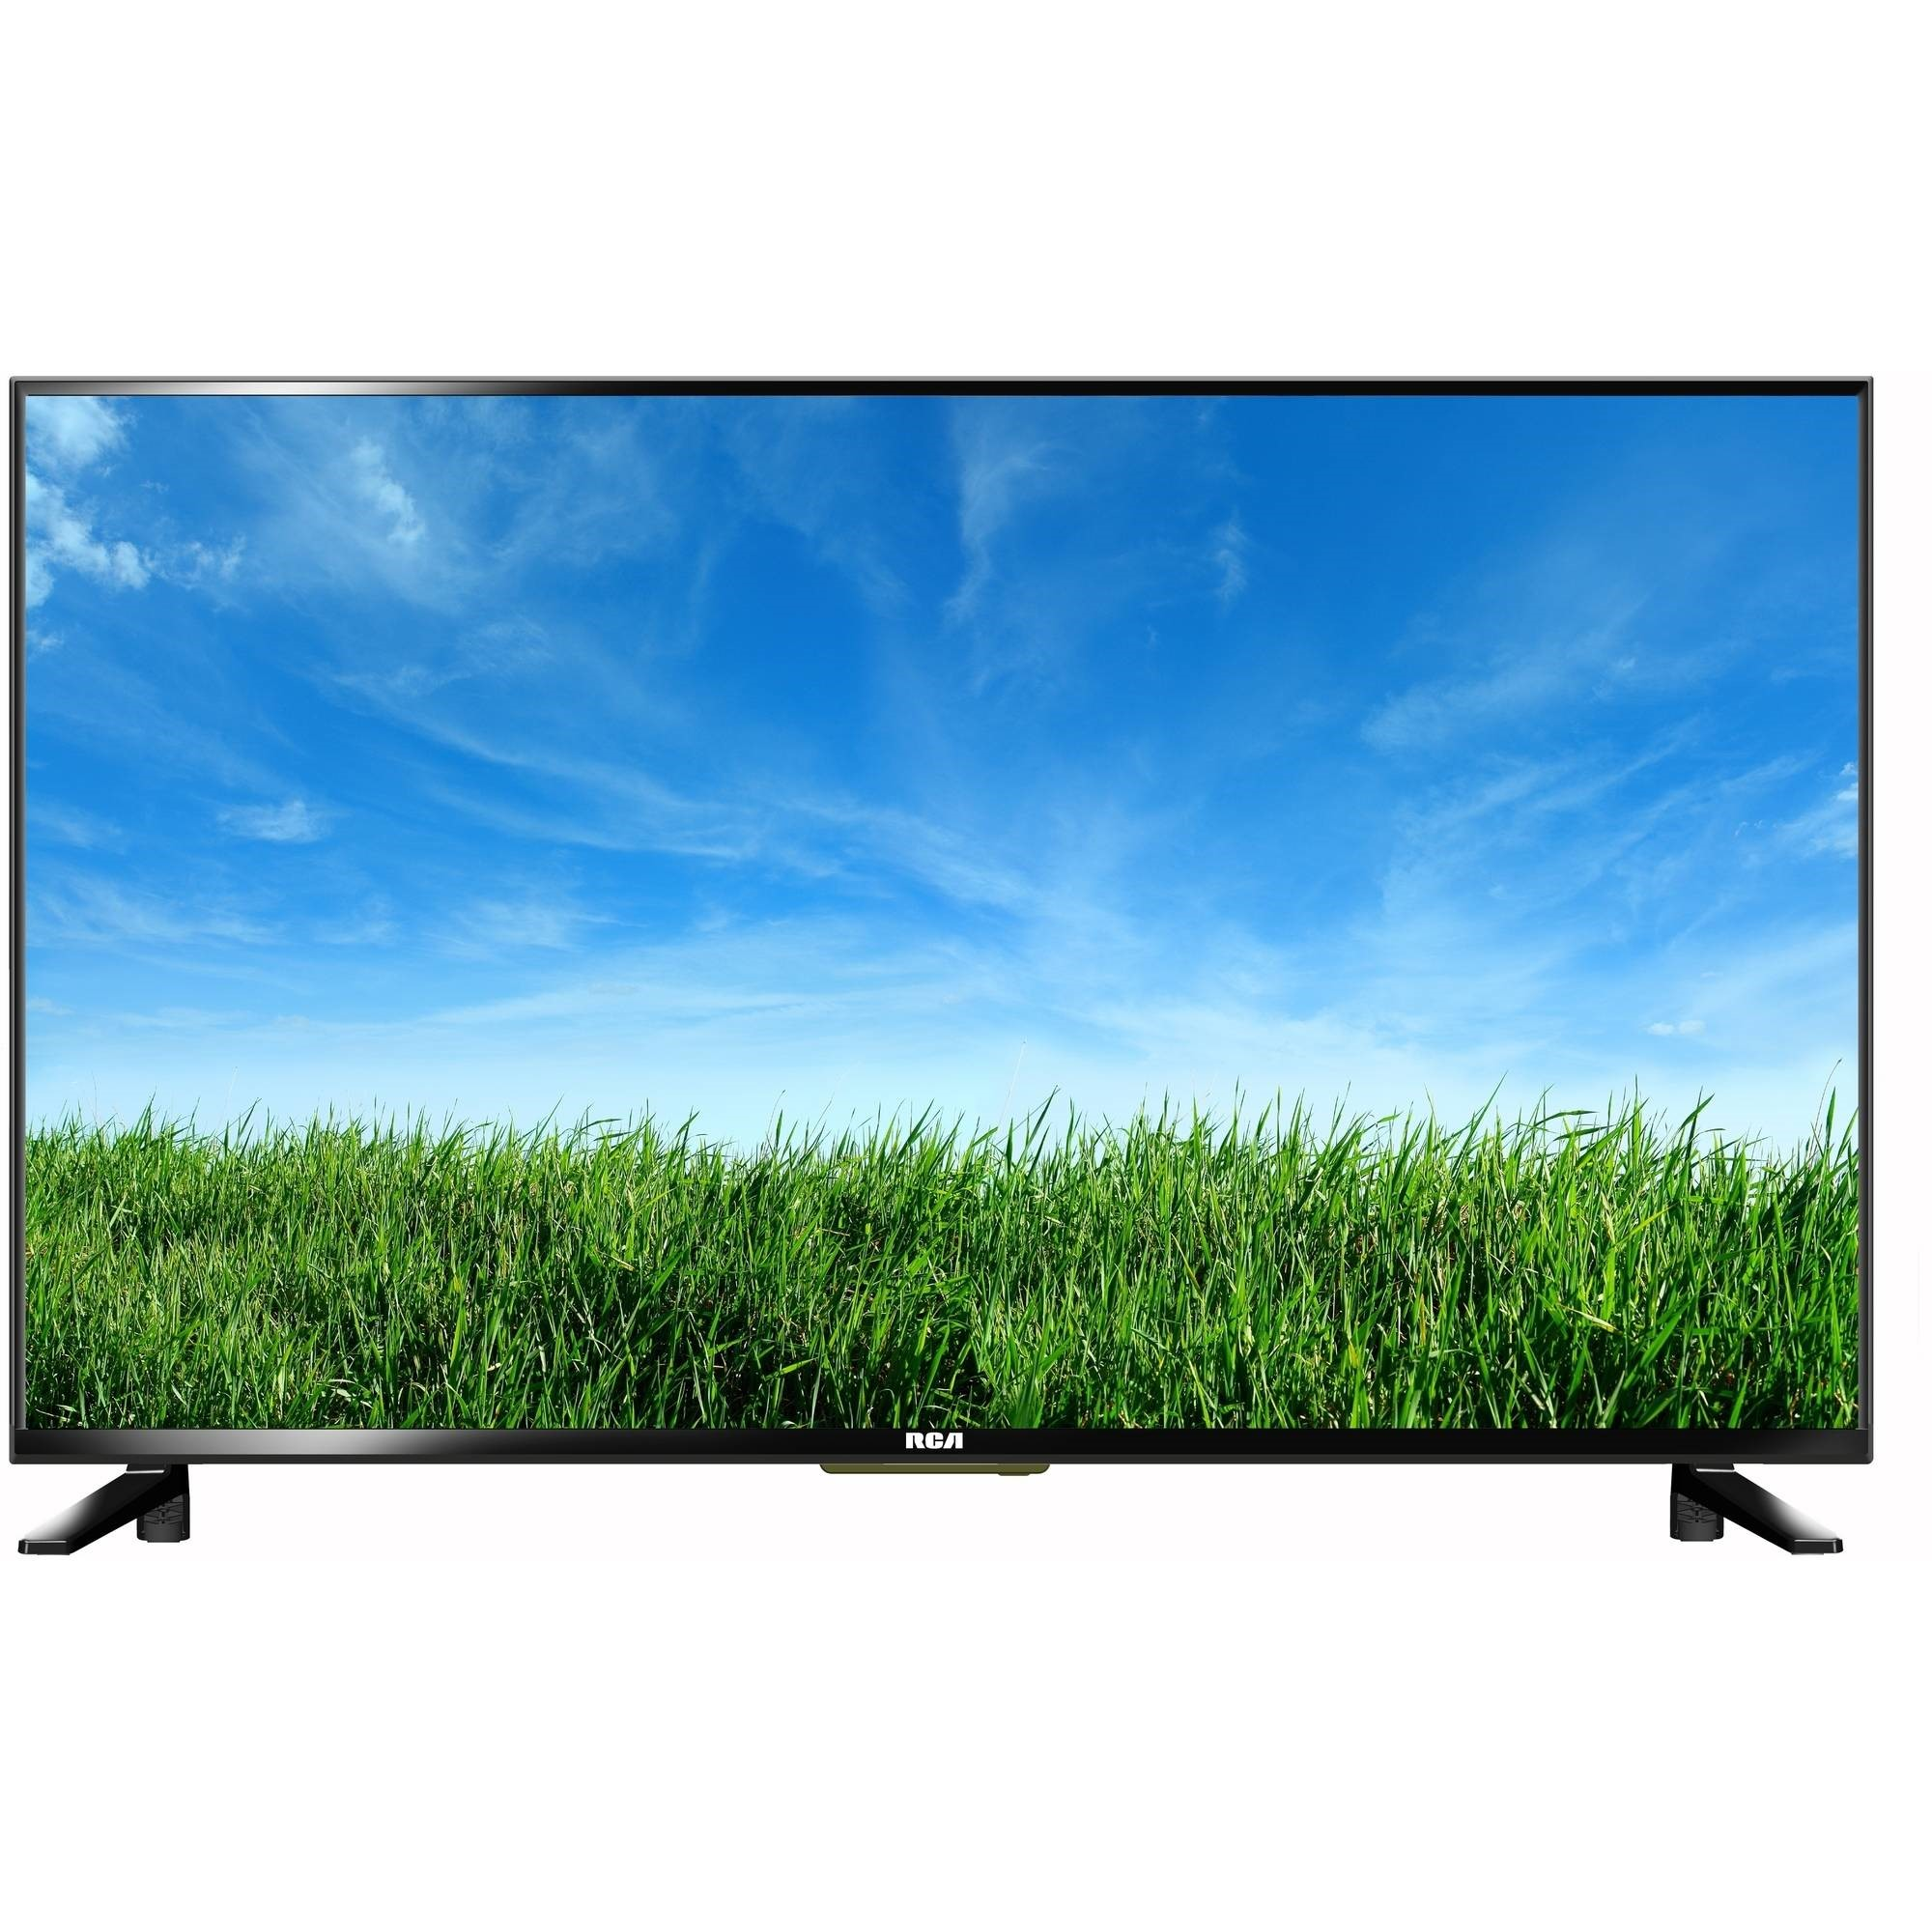 "RCA 32"" Class HD (720P) LED TV (RLDED3258A)"